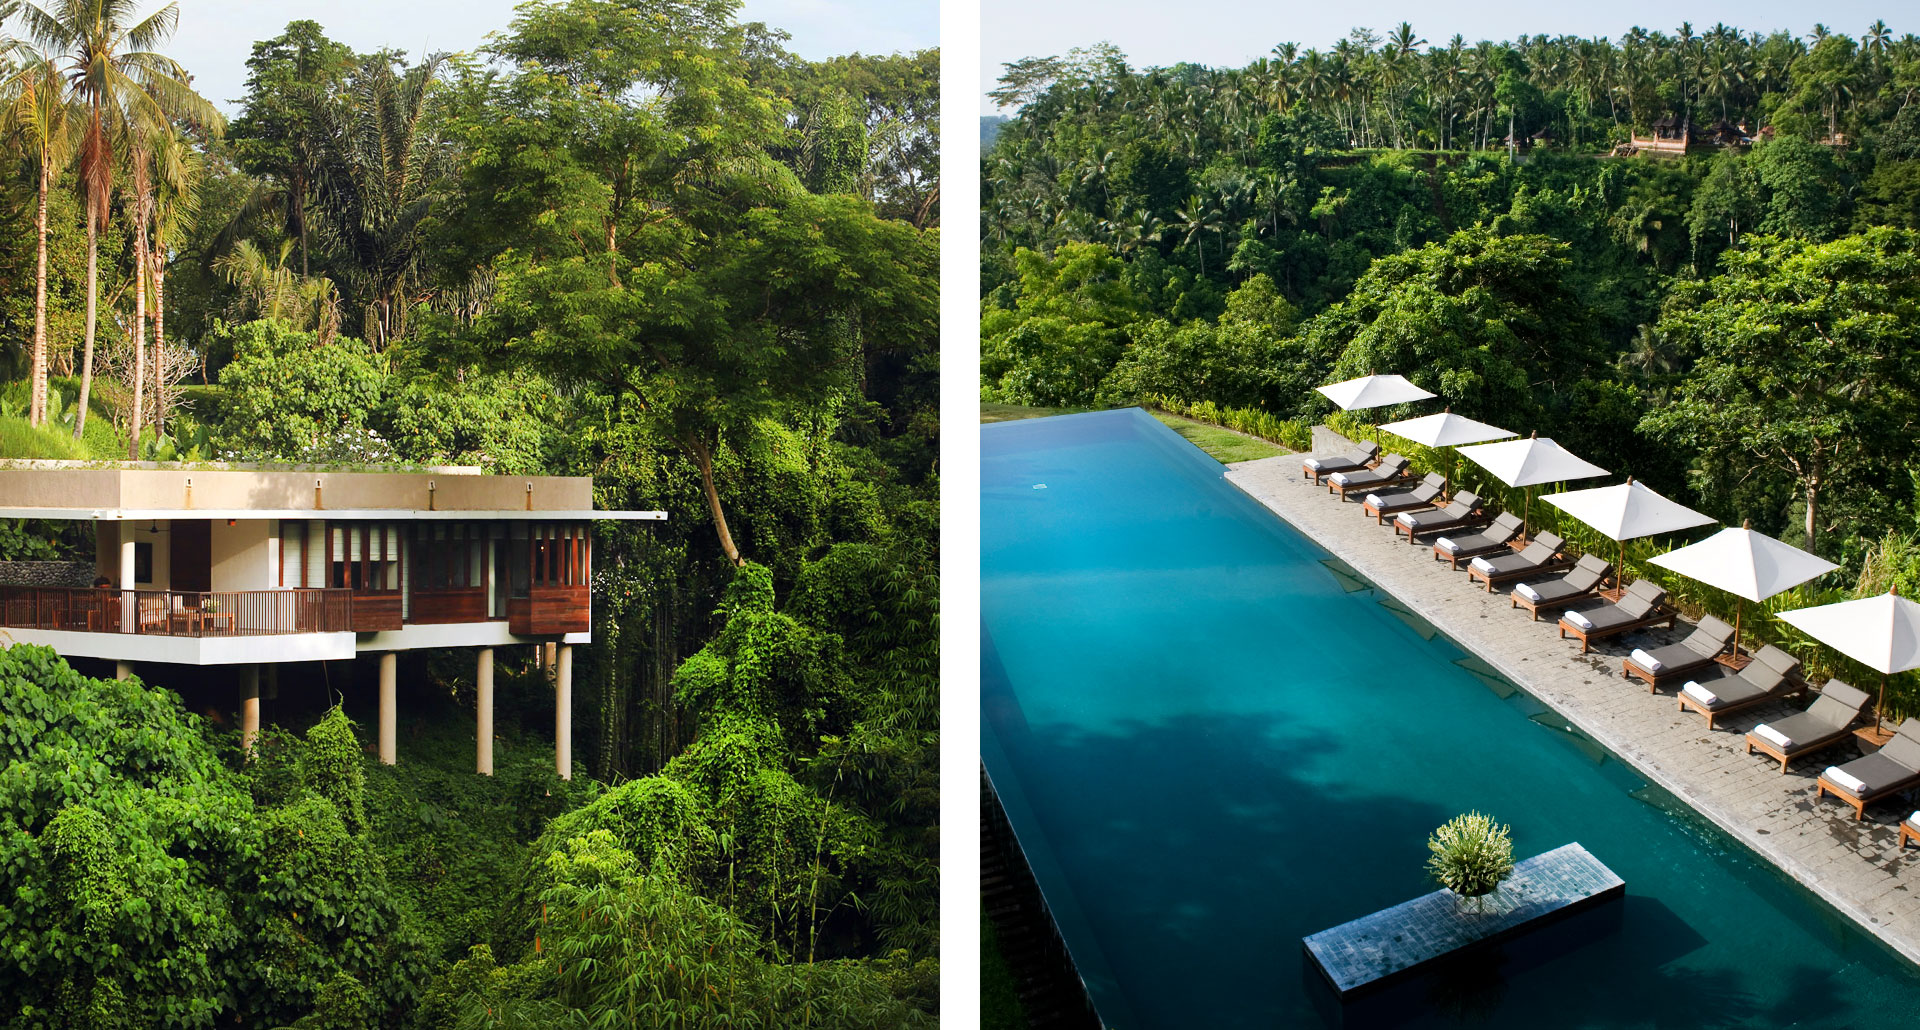 Bali Has Long Been A Magnet For Dreamers And S Our Money The Lush Interior Of Island Is Where It At Perched On Edge Jungle